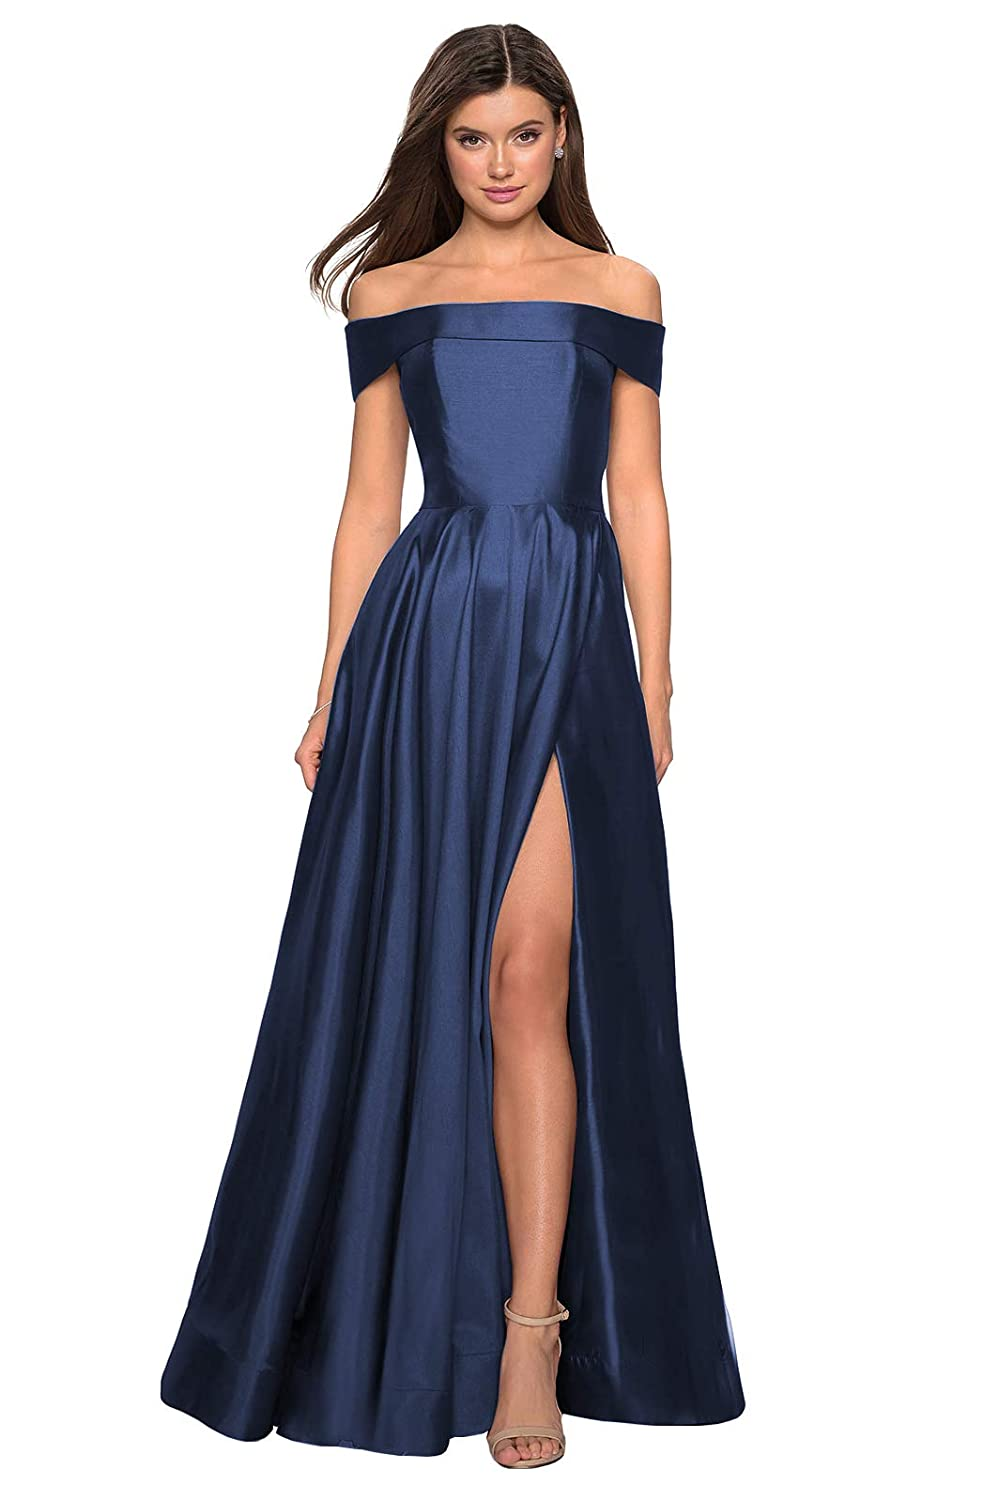 YORFORMALS Womens Off The Shoulder A-line Satin Long Evening Prom Dress Formal Ball Gown with High Slit